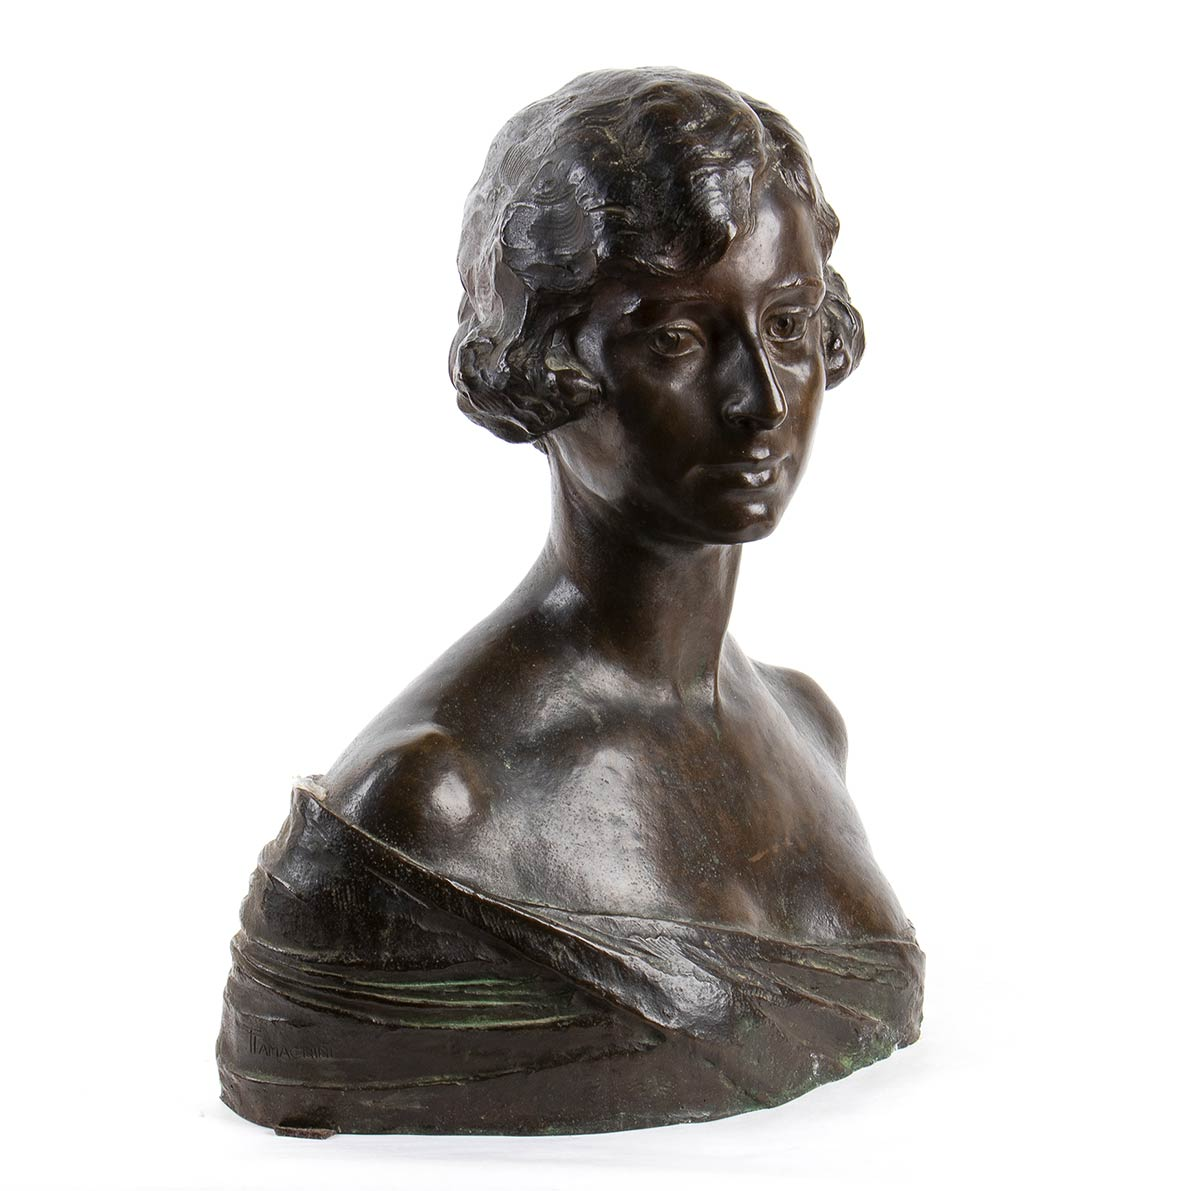 TORQUATO TAMAGNINI Perugia, 1886 - Roma, 1965-Bust of a young girl, Late 19th Century - Image 2 of 3